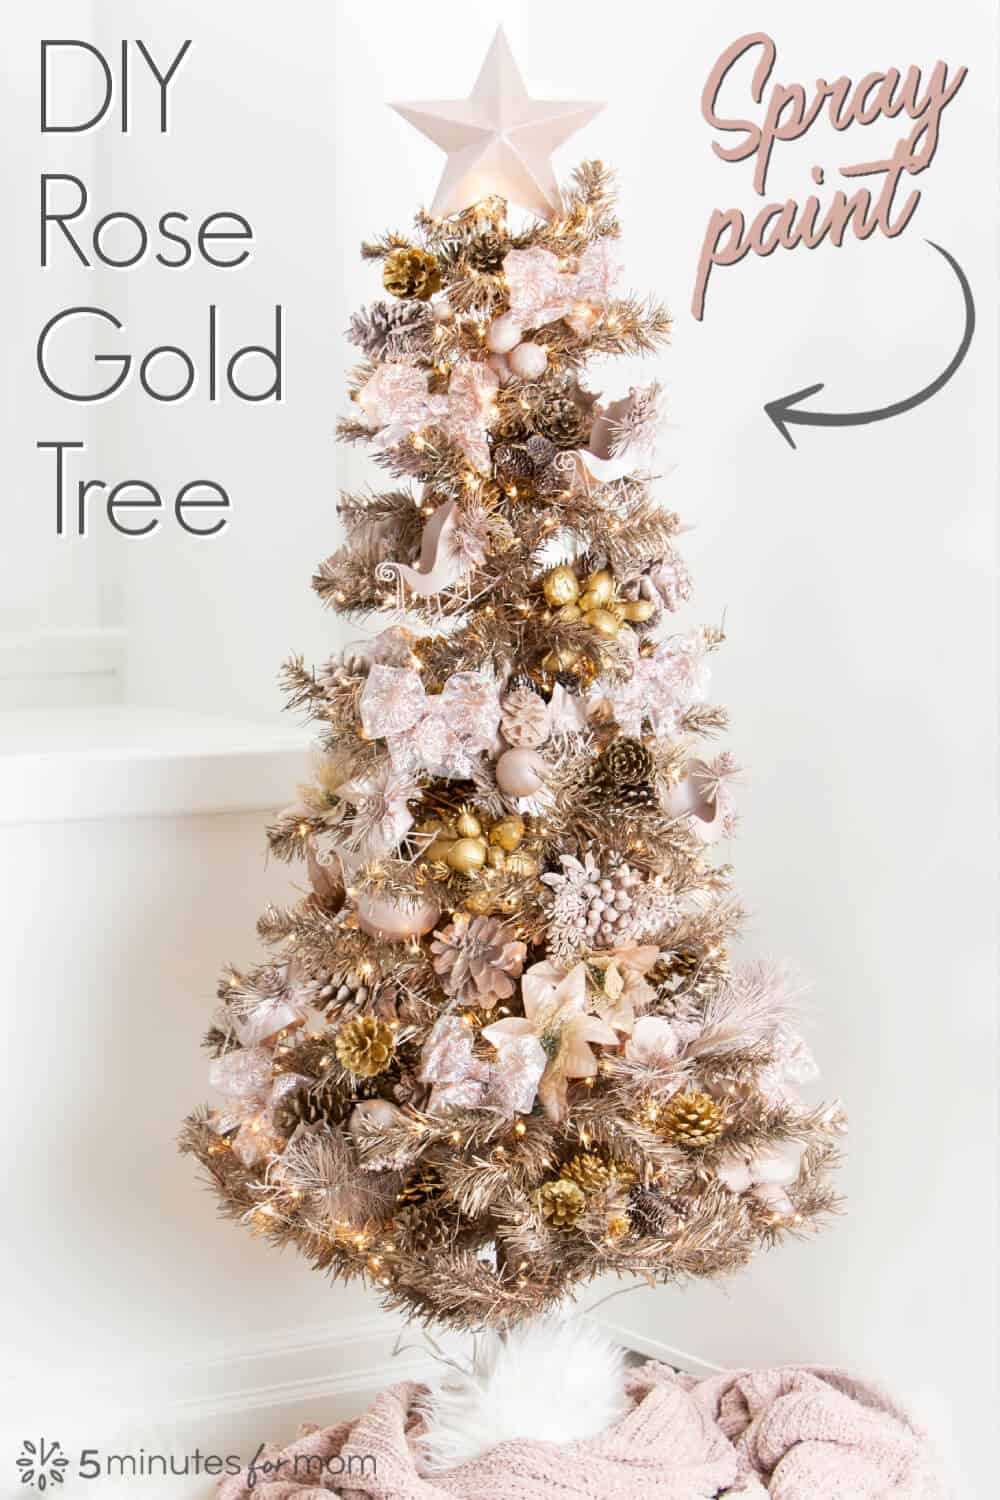 Rose Gold Christmas Tree DIY - Spray Painted Tree